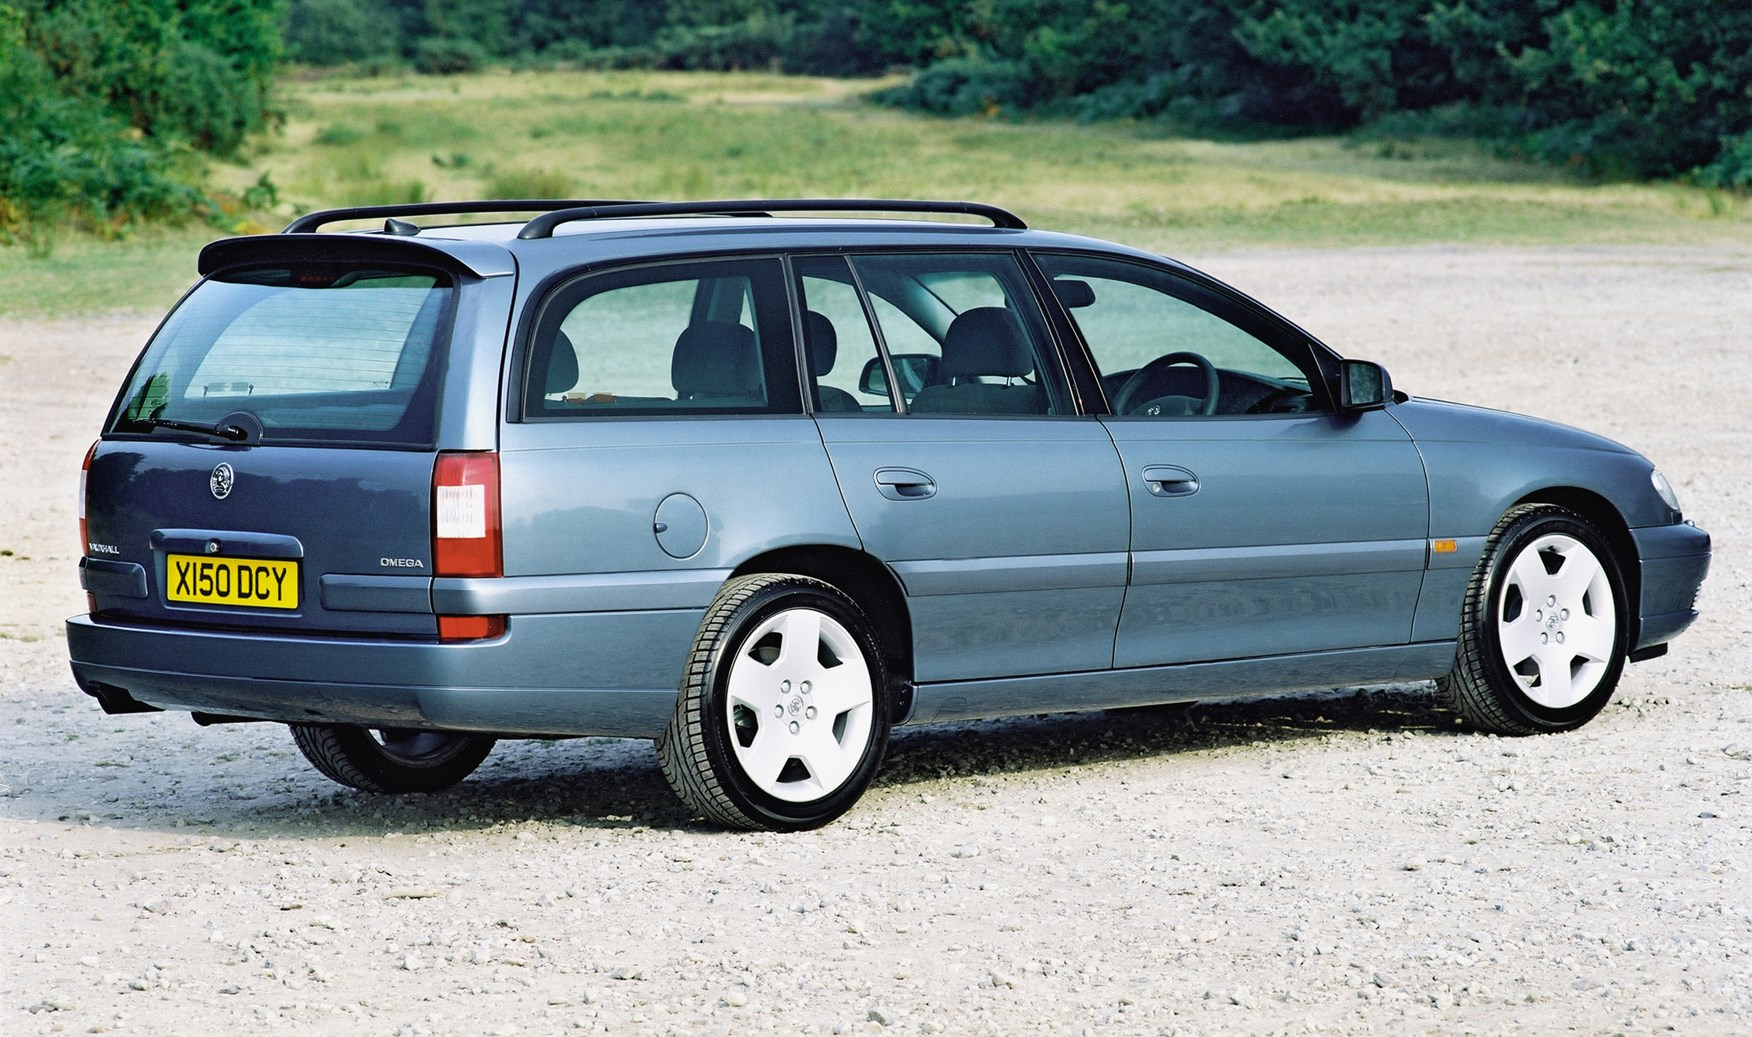 Vauxhall vauxhall vxr8 estate : Vauxhall Omega Estate (1994 - 2003) Photos | Parkers